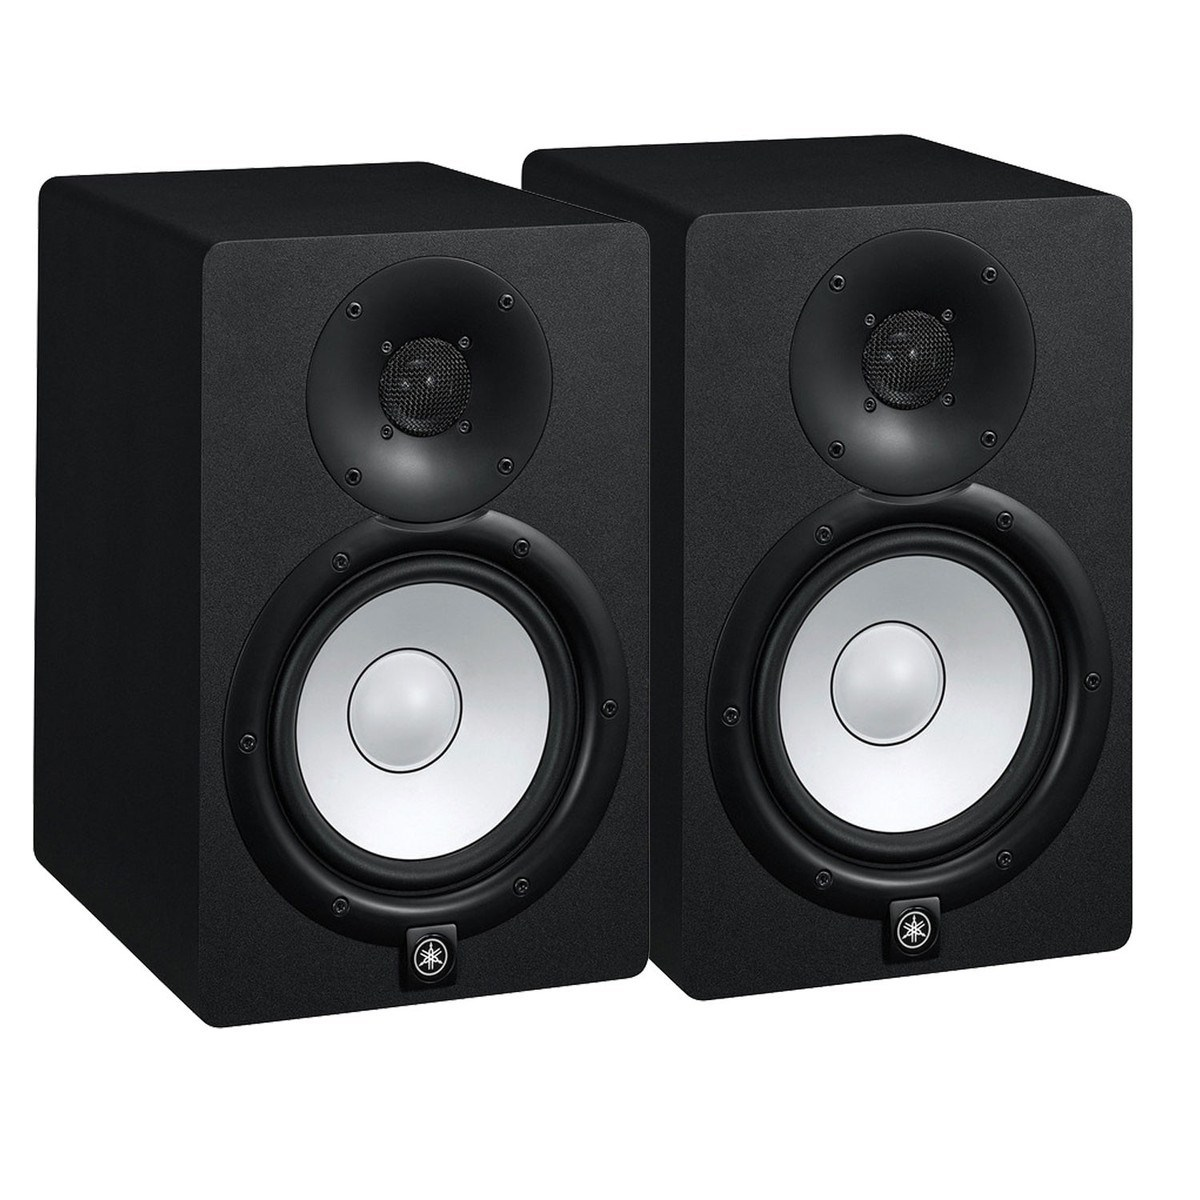 yamaha hs8 active studio monitors pair rockbottom music. Black Bedroom Furniture Sets. Home Design Ideas